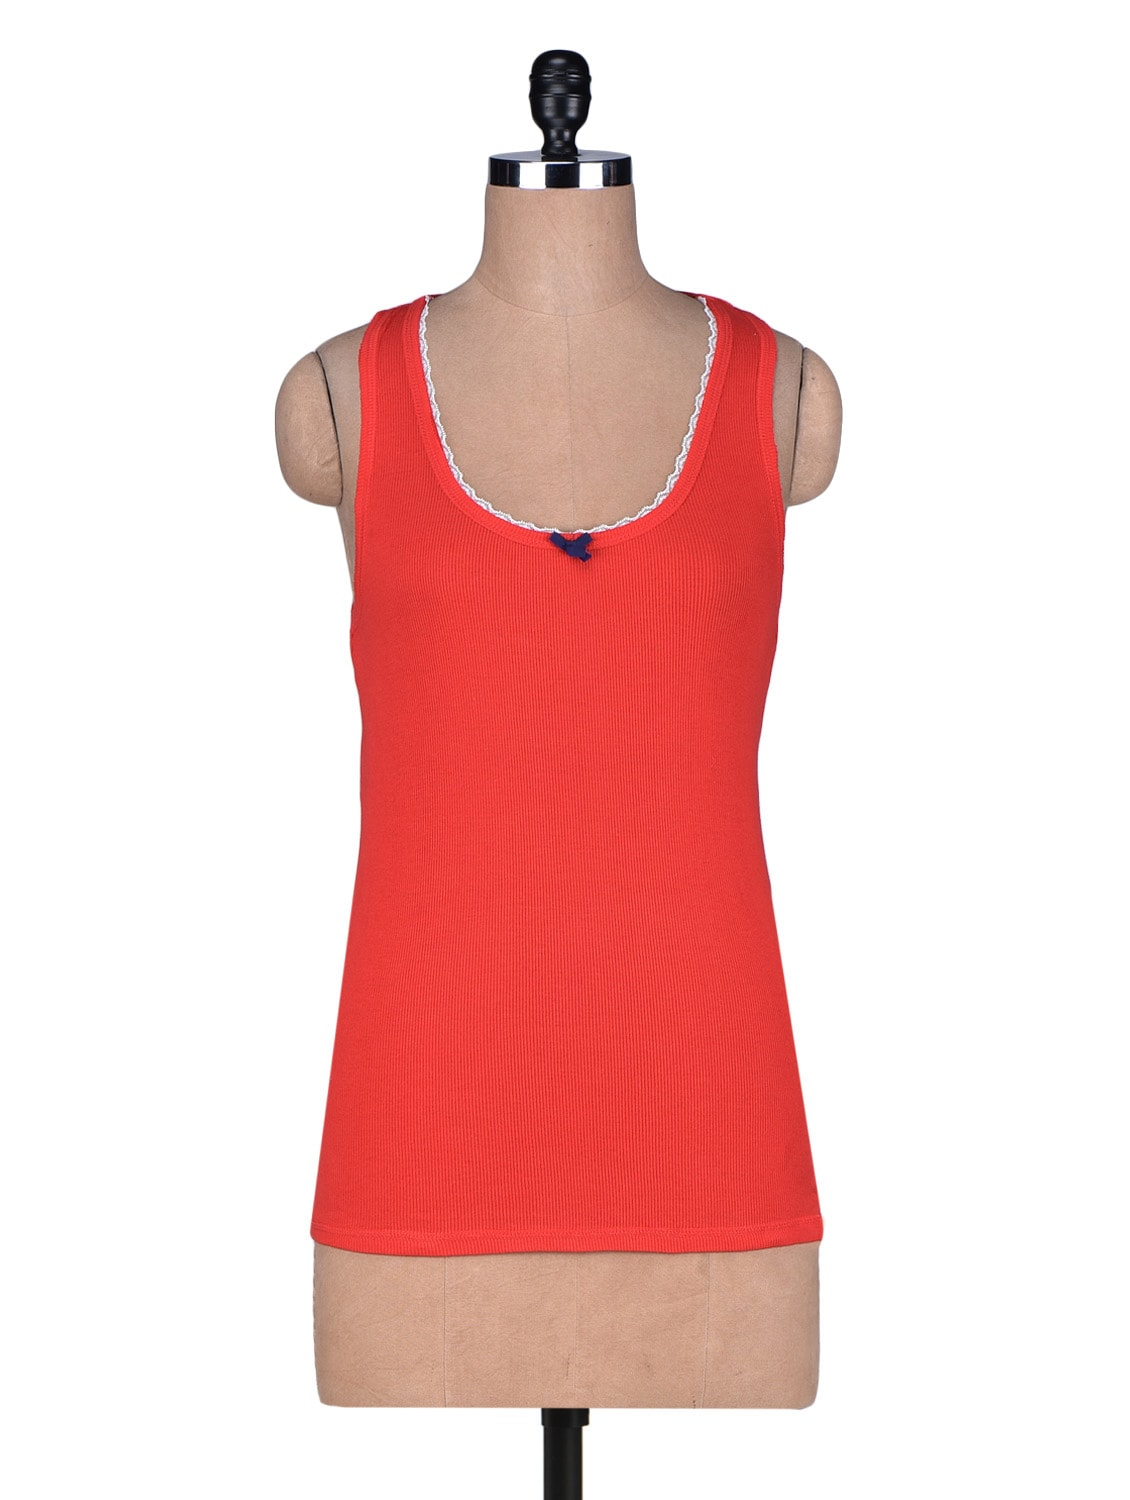 Solid Red Cotton Camisole - By